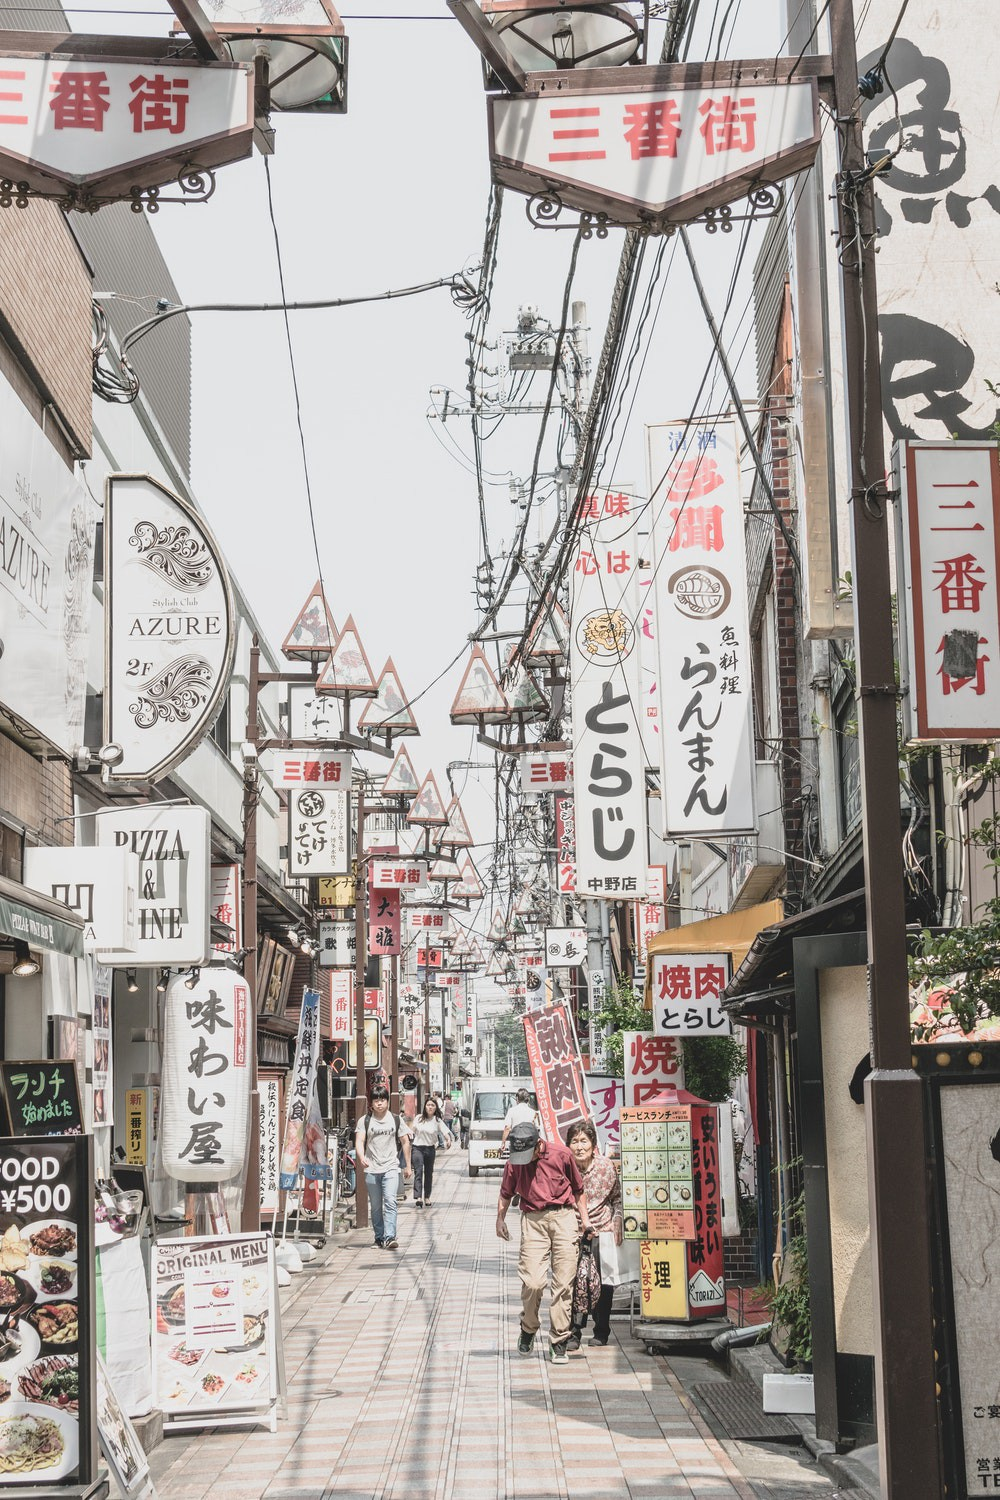 Shopping streets in Nakano